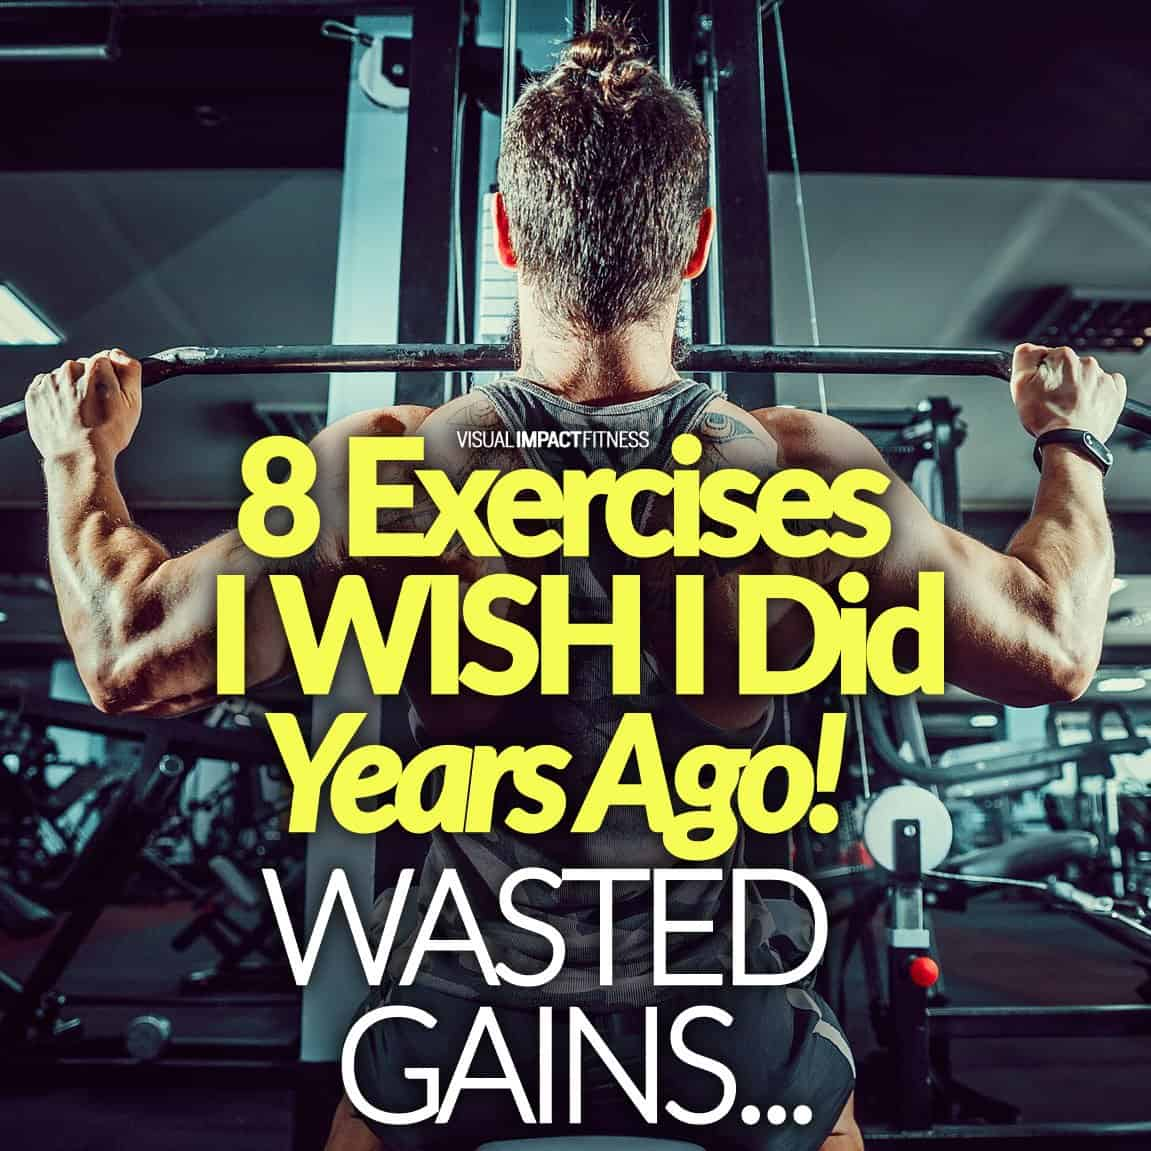 8 Exercises I WISH I Did Years Ago! (WASTED GAINS)